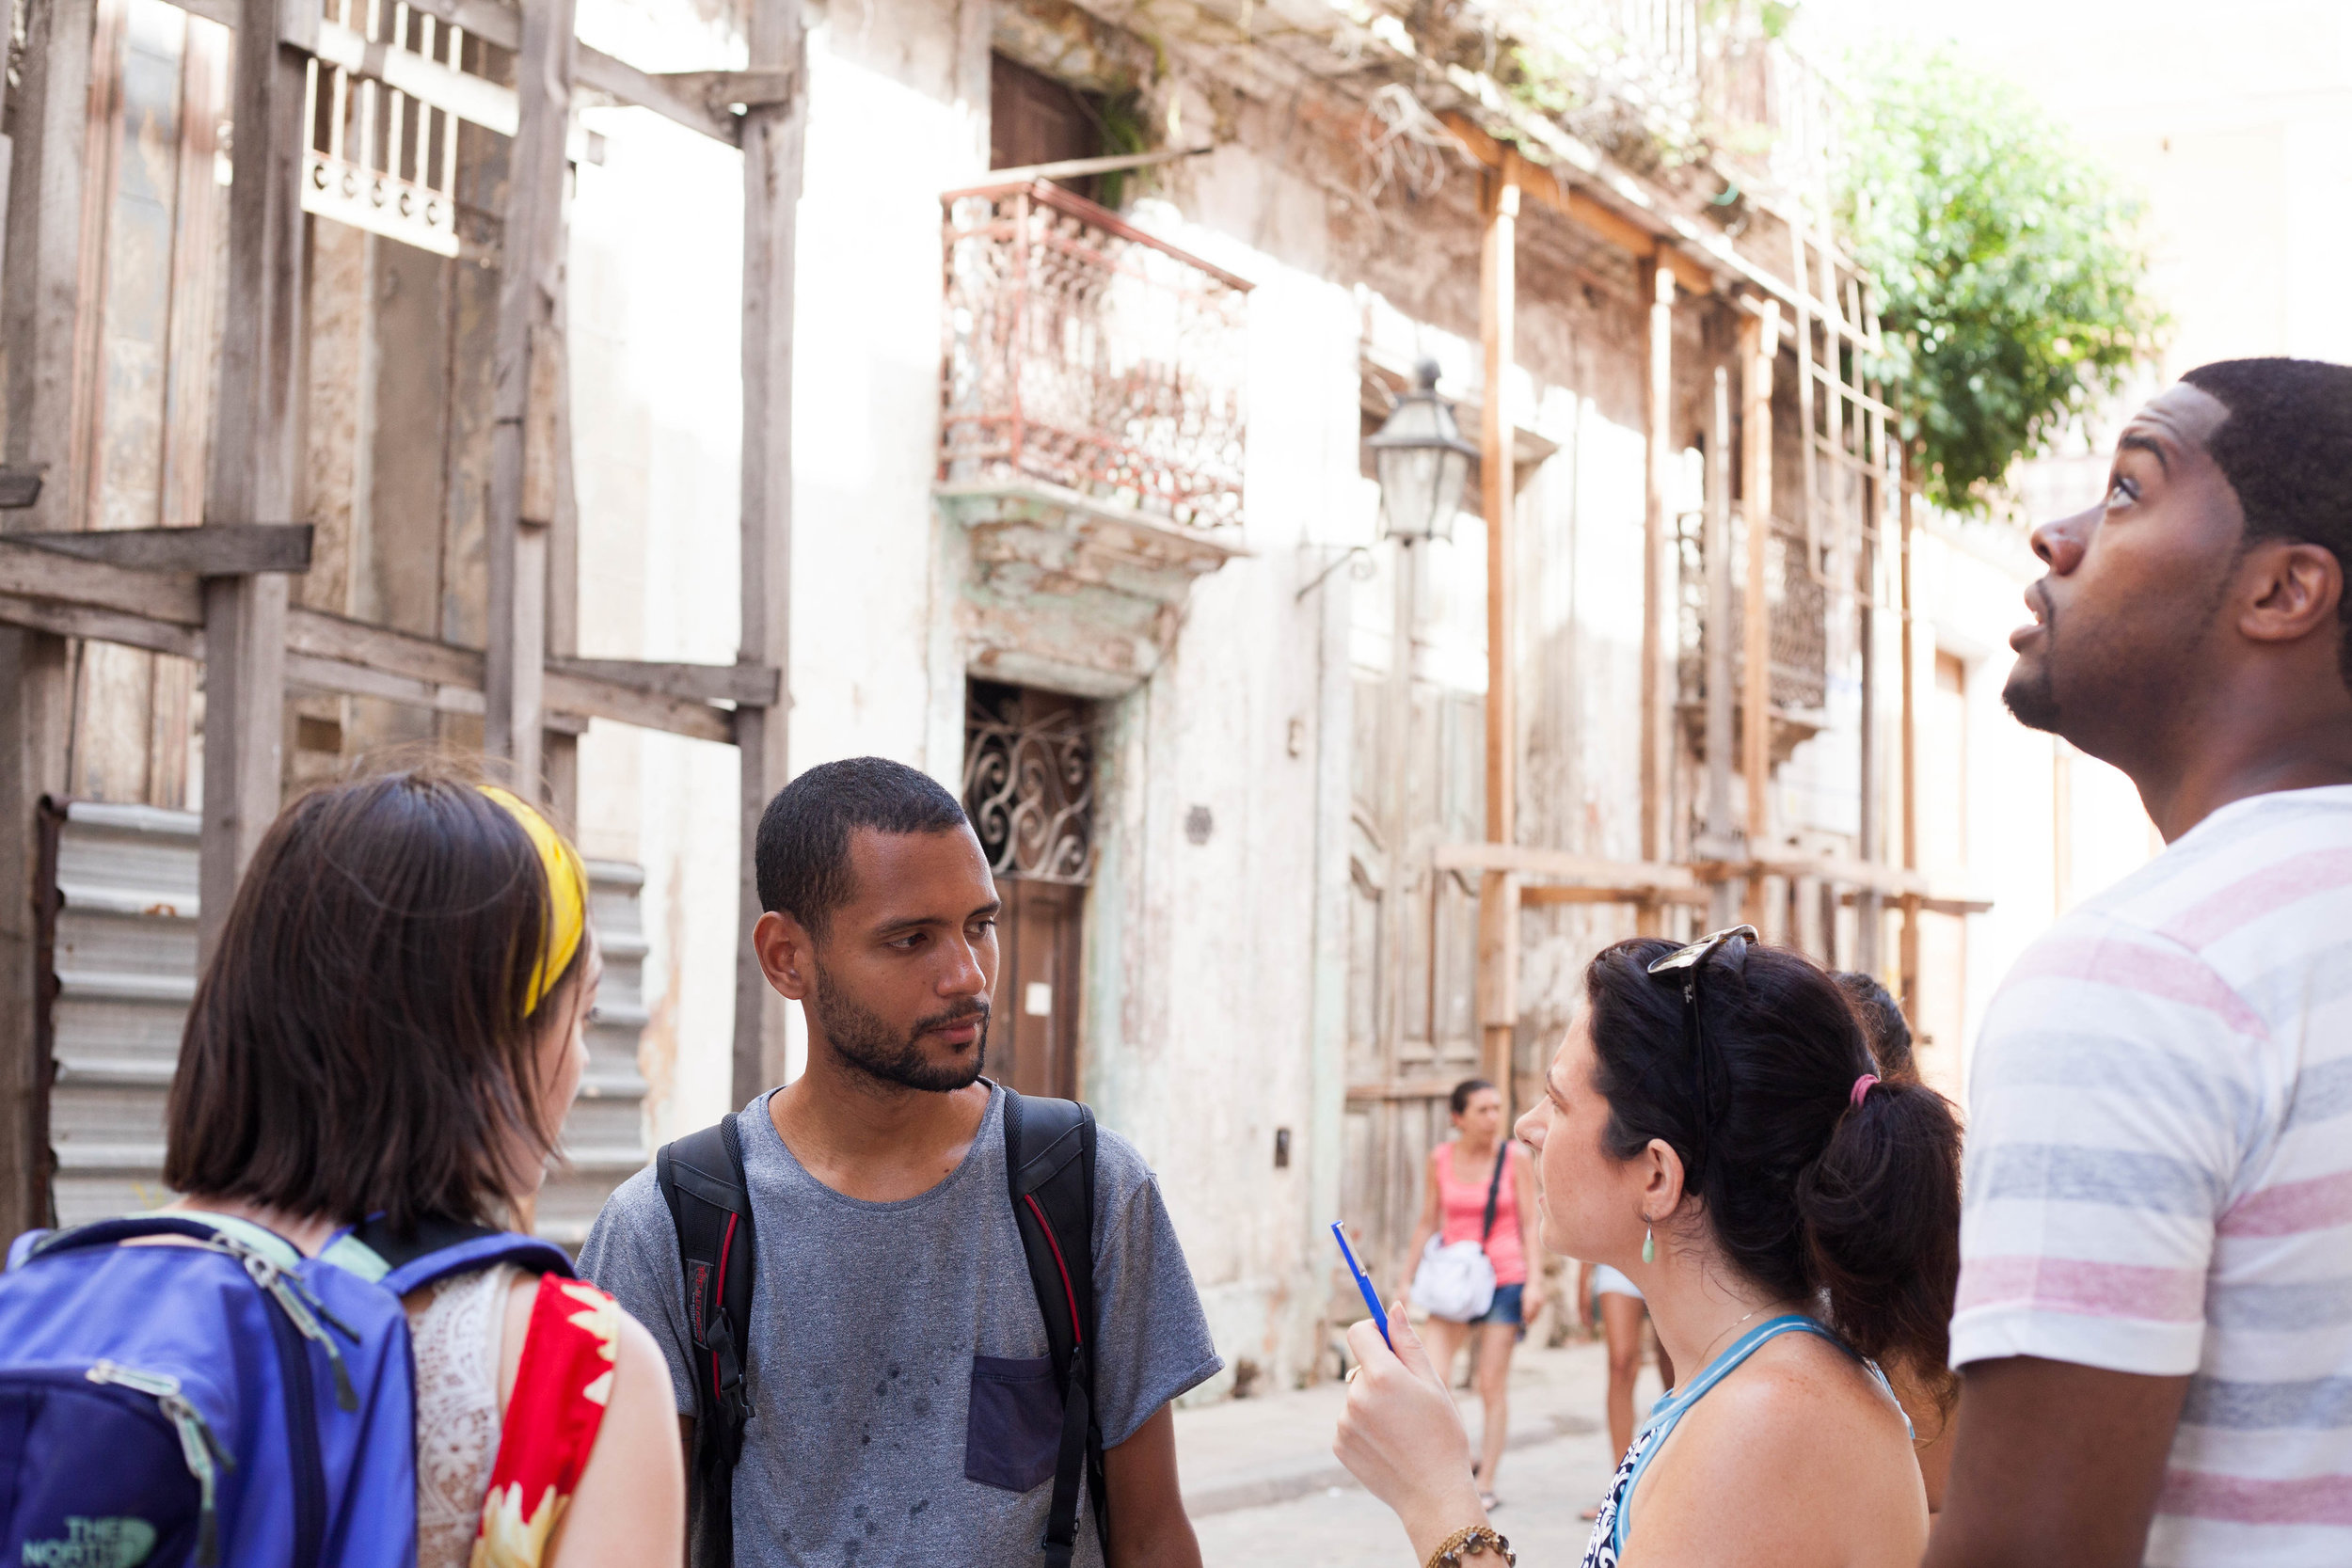 On a guided architectural walk around Old Havana. Learning about history, culture, and politics through architecture.